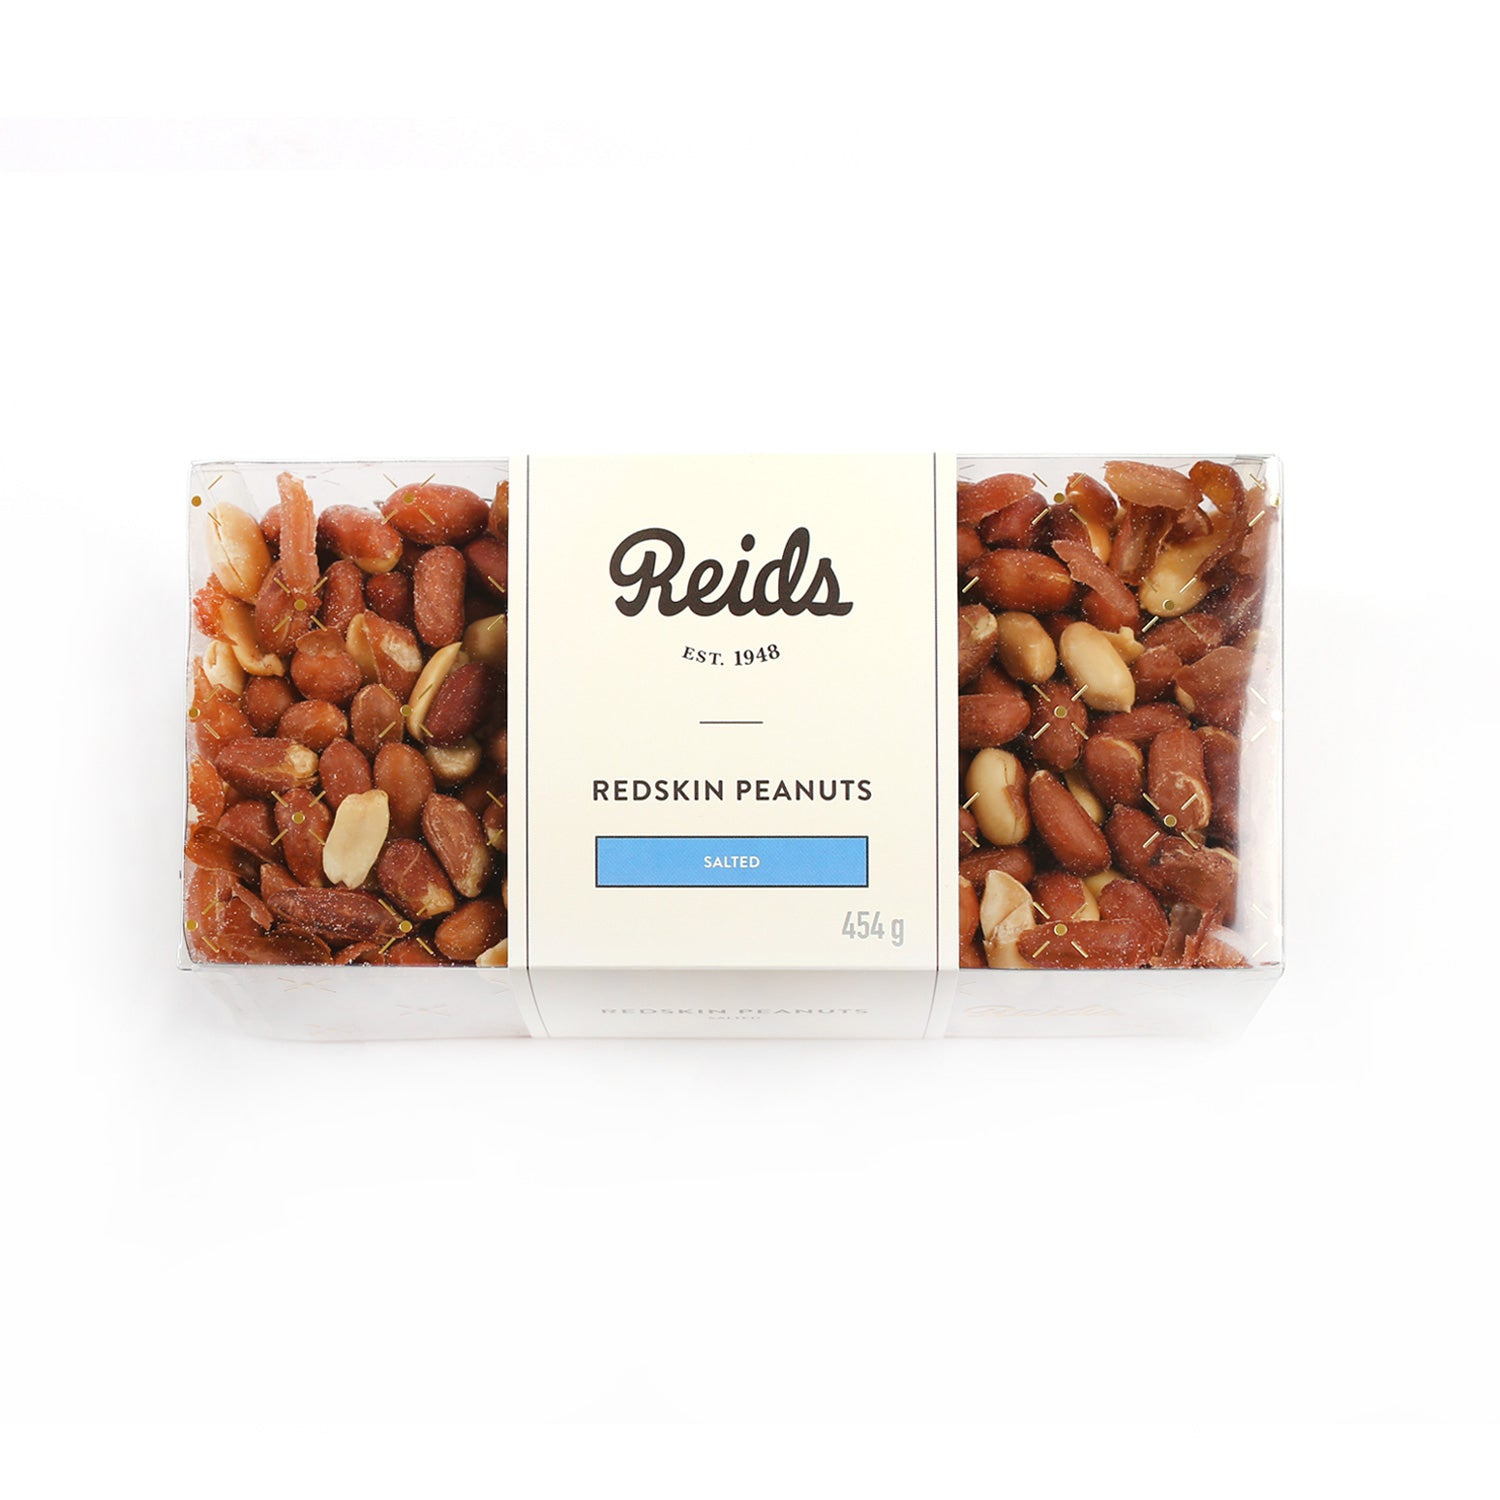 1/2 lb clear box of salted red skinned peanuts